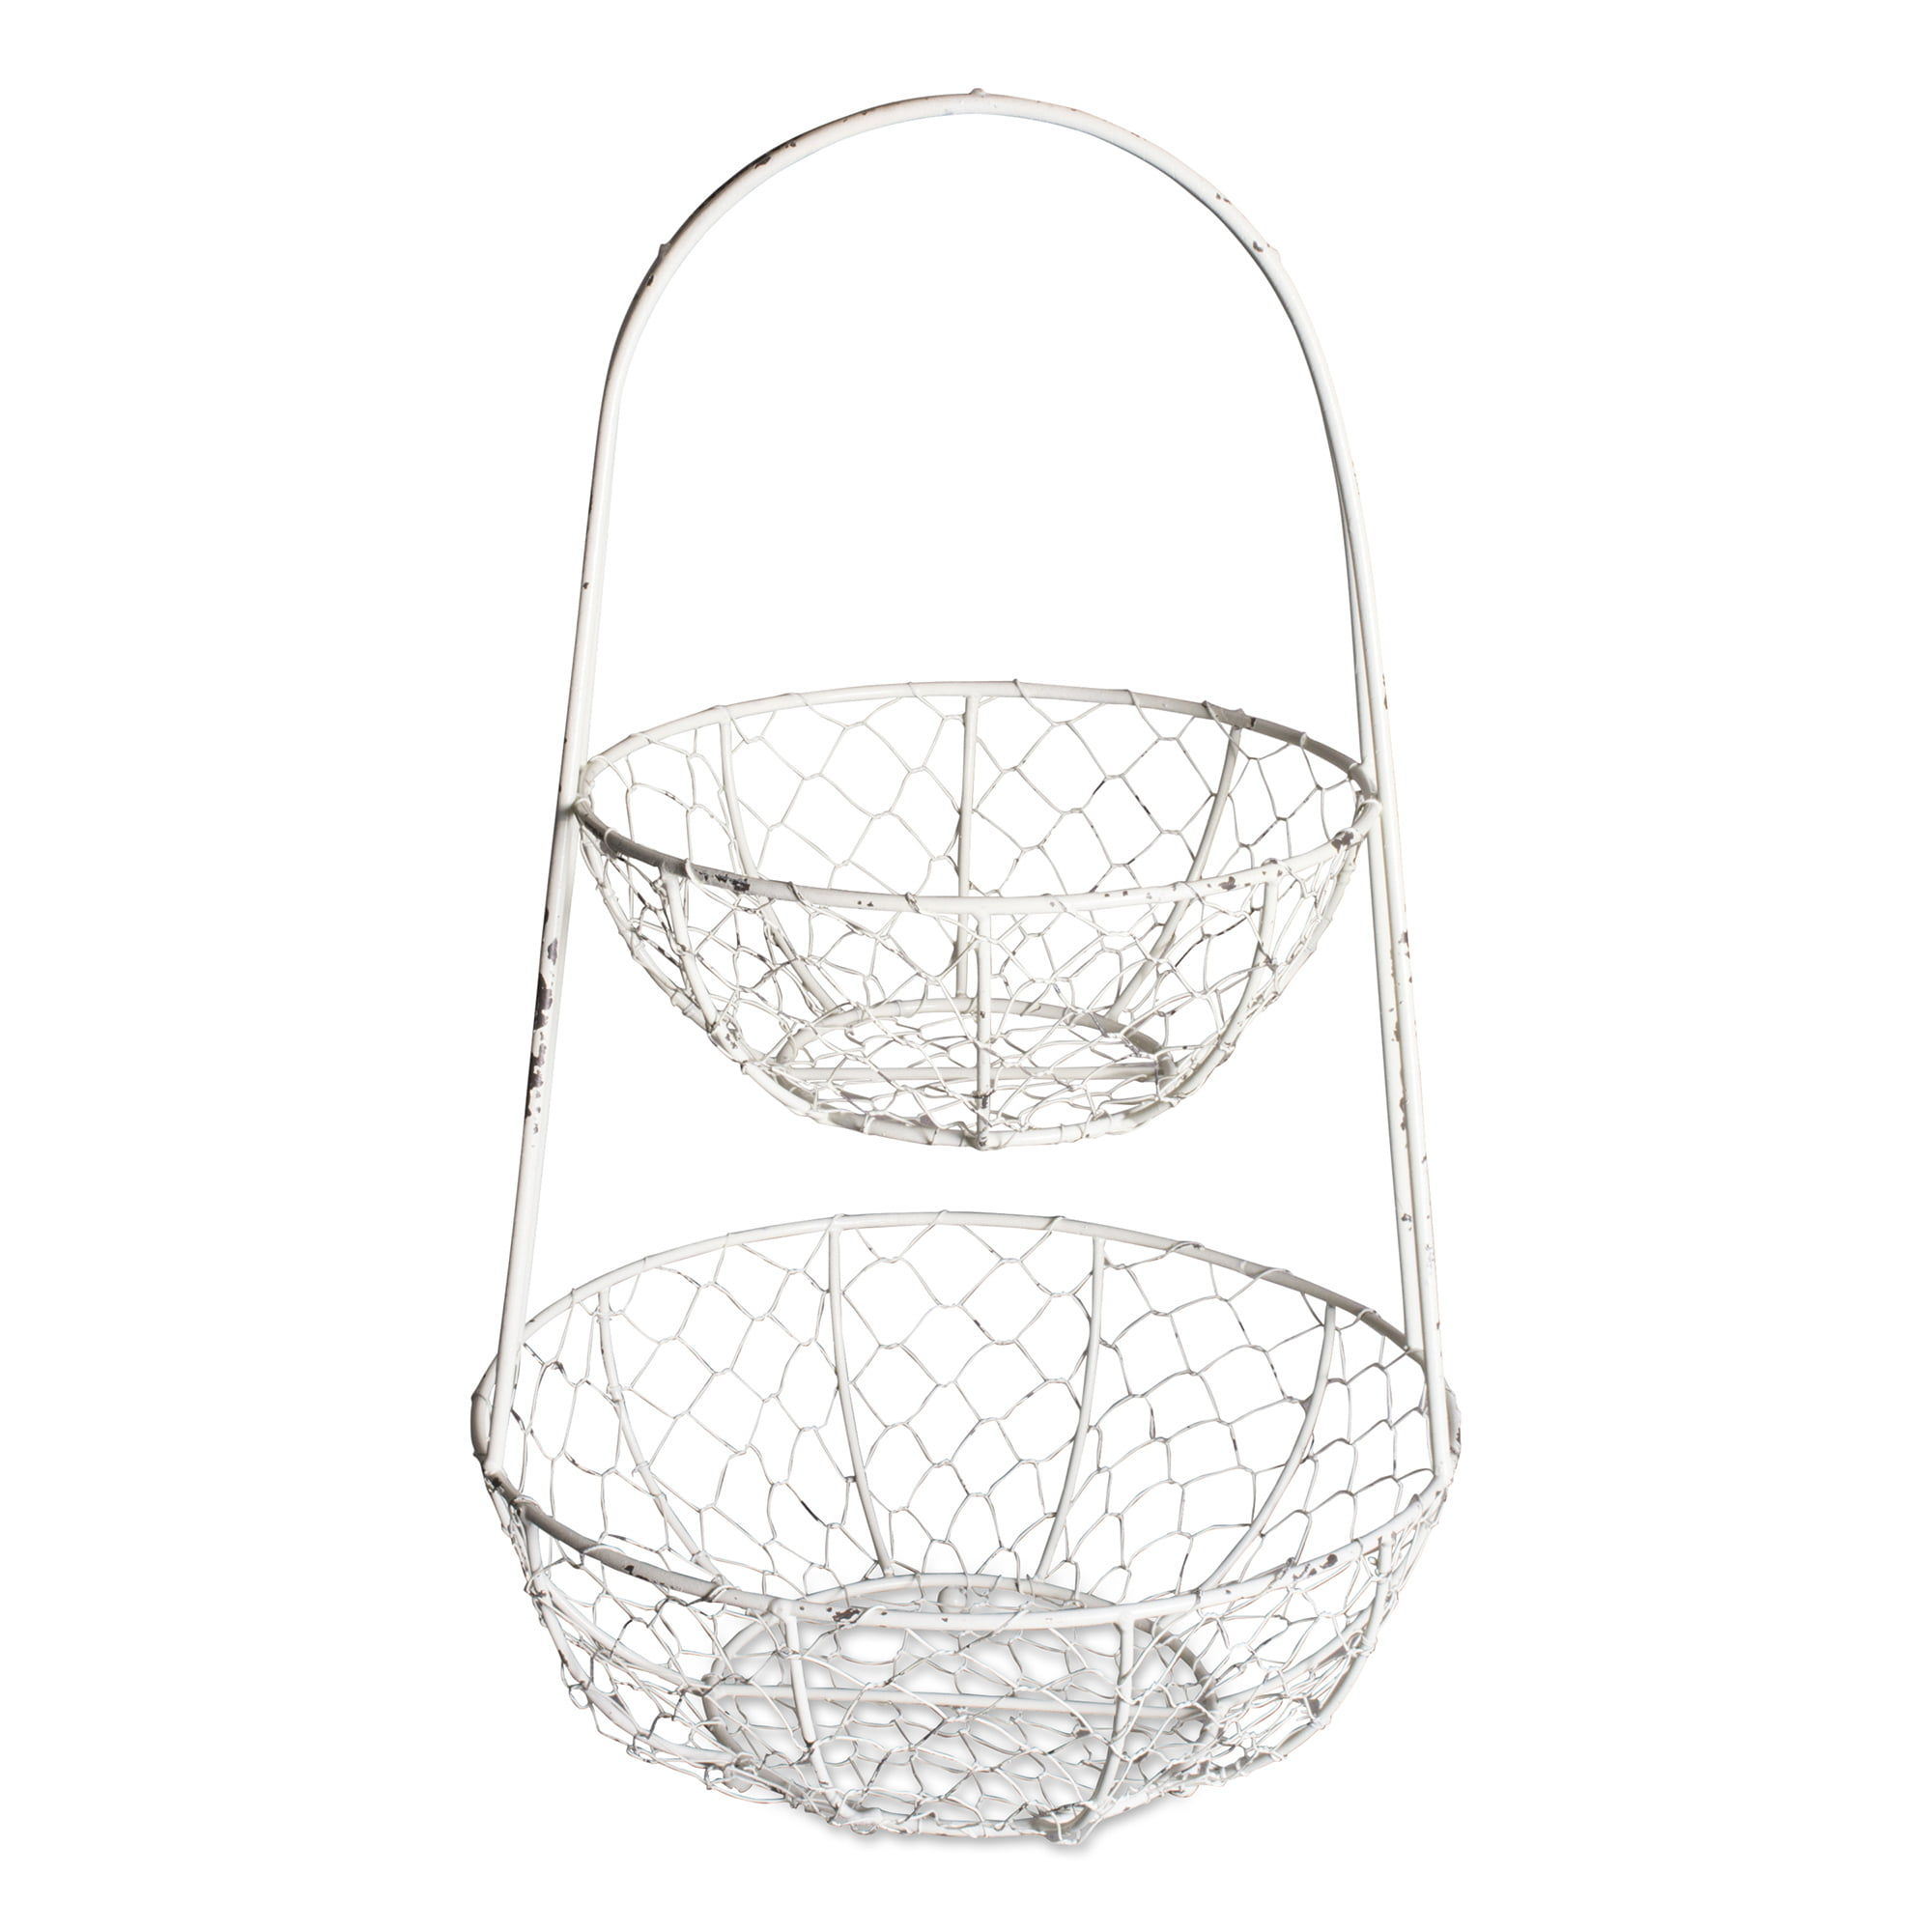 CVHOMEDECO Rustic Chicken Wire 2 Tier Fruit Basket Metal Gathering Basket with Handle Country Vintage Style Storage Basket 12-3//4 X 8-3//4 X H 16 Inch Grey